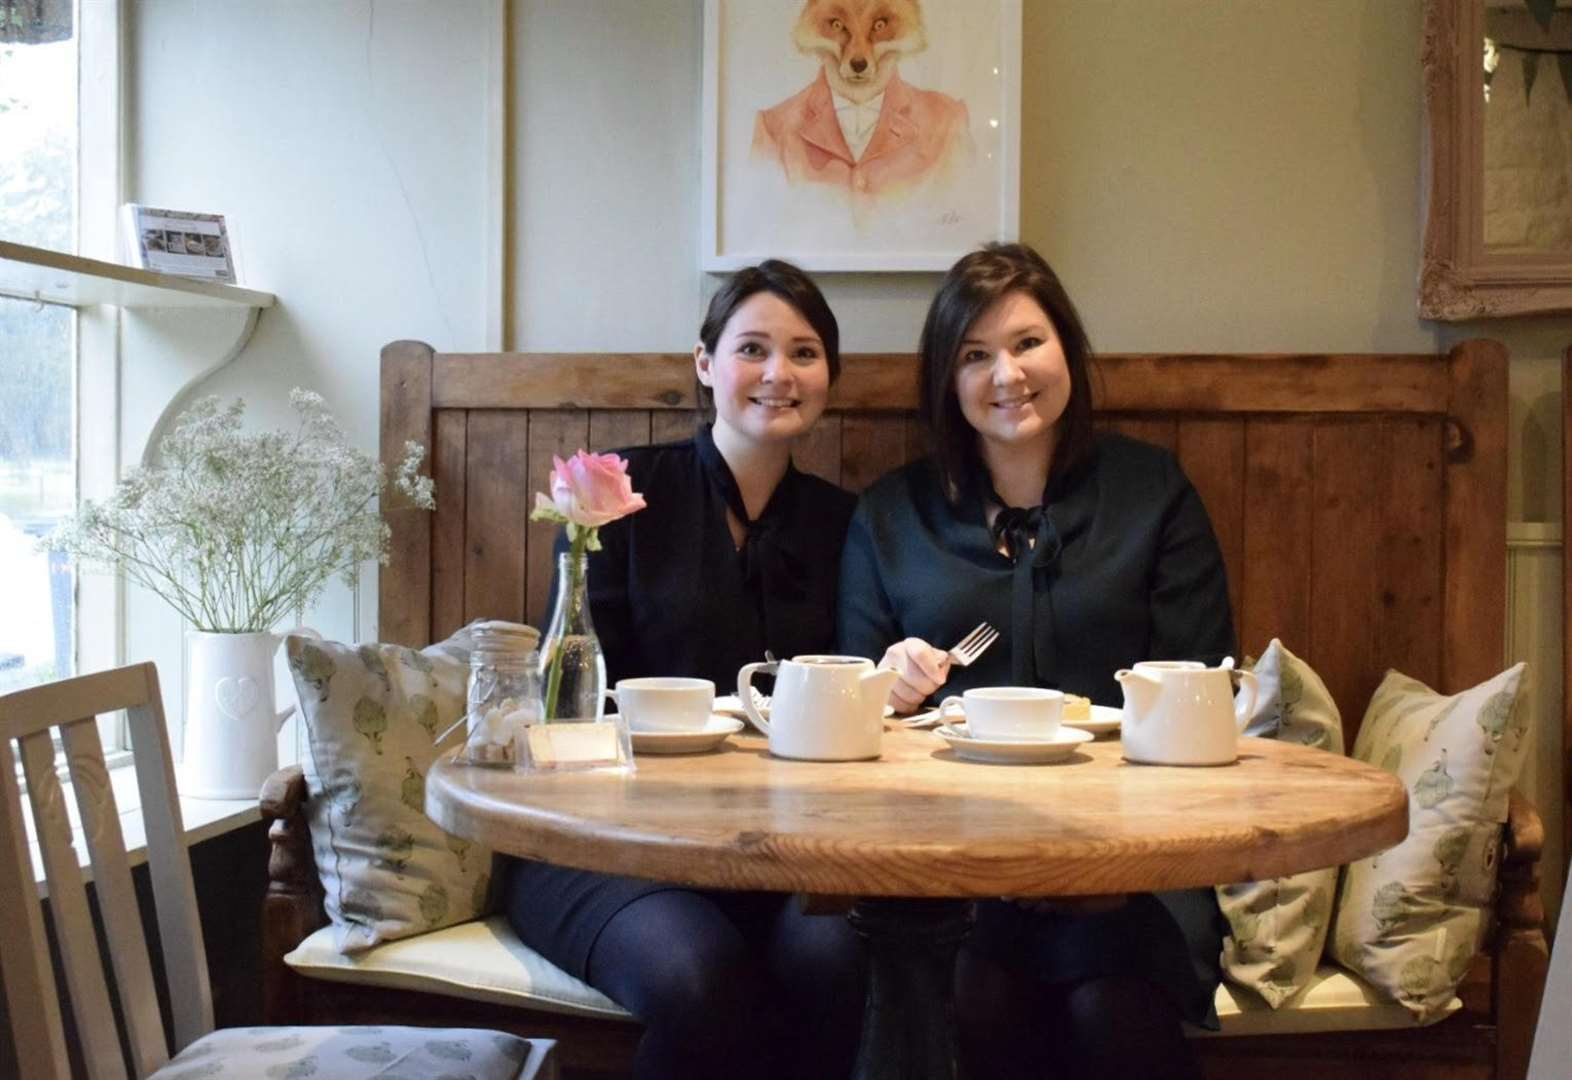 Recognition pours in for Leadenham Teahouse